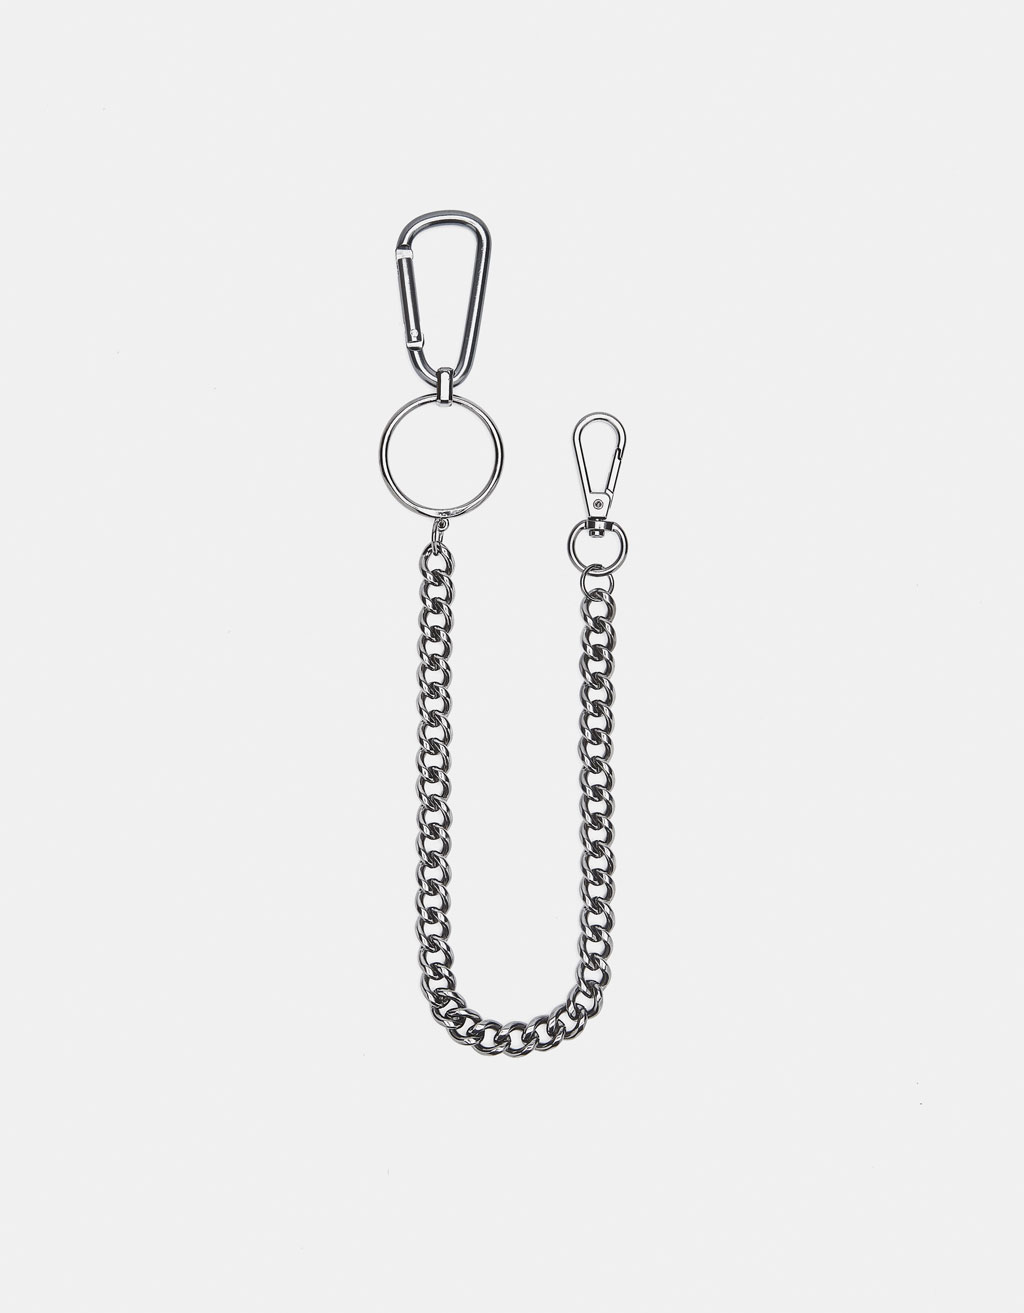 Key ring with chain